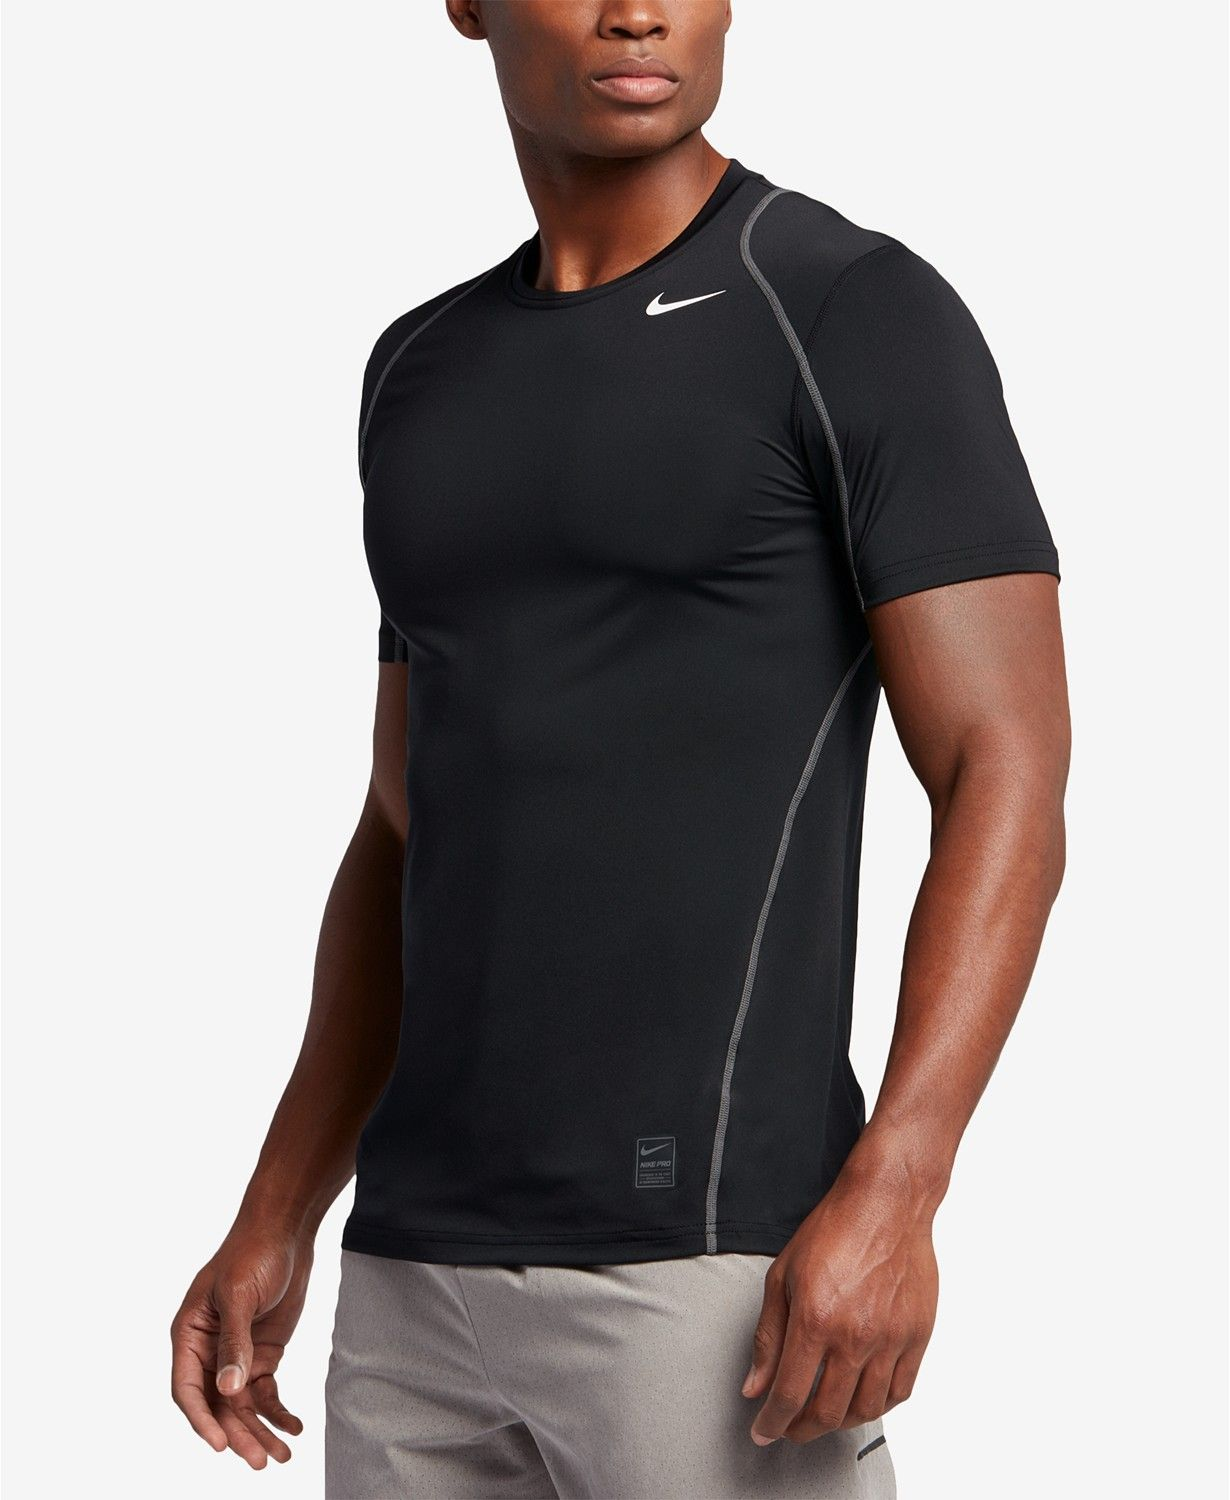 9a86a197 Nike Men's Pro Cool Fitted Dri-FIT Shirt | macys.com | Active wear ...